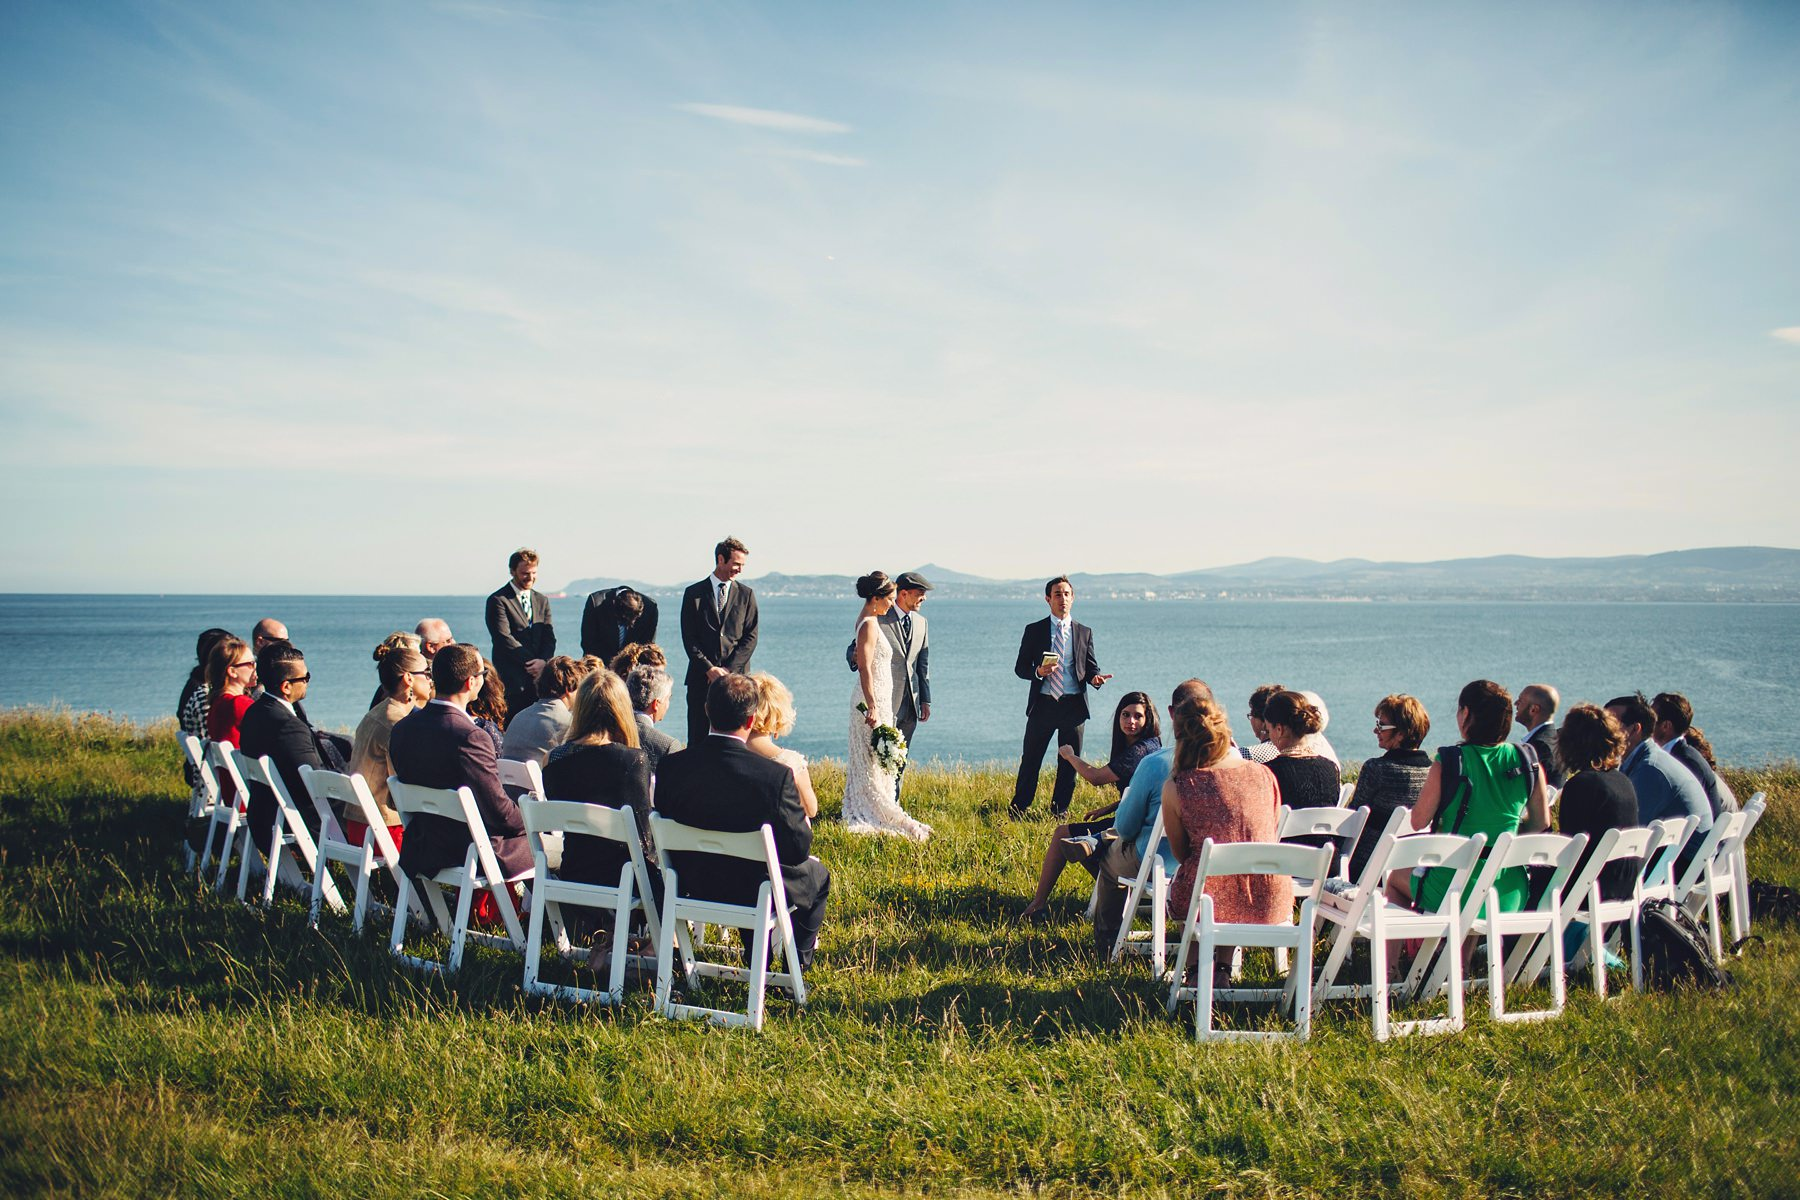 A wedding photo of a bride and groom and their guests on a cliff side at Martello tower in Dublin.